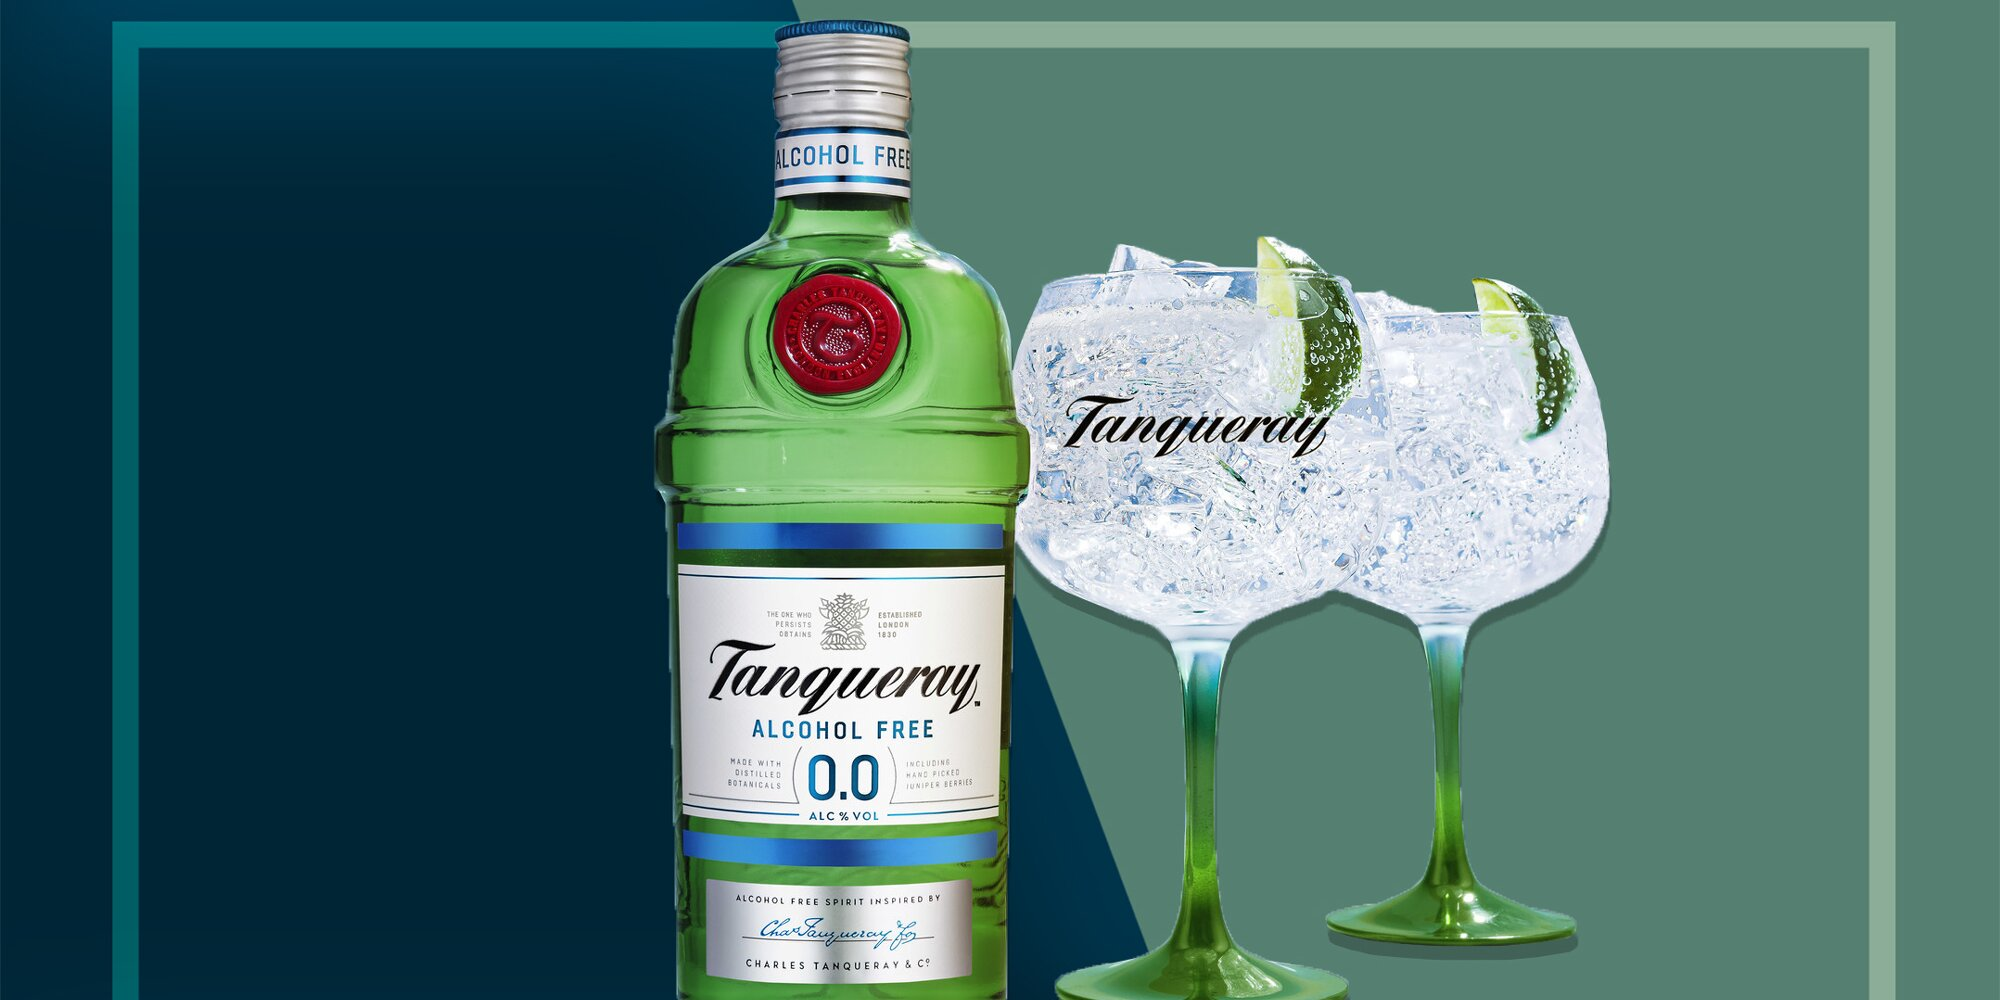 Tanqueray Announces Alcohol-free Version Of Its Gin photo